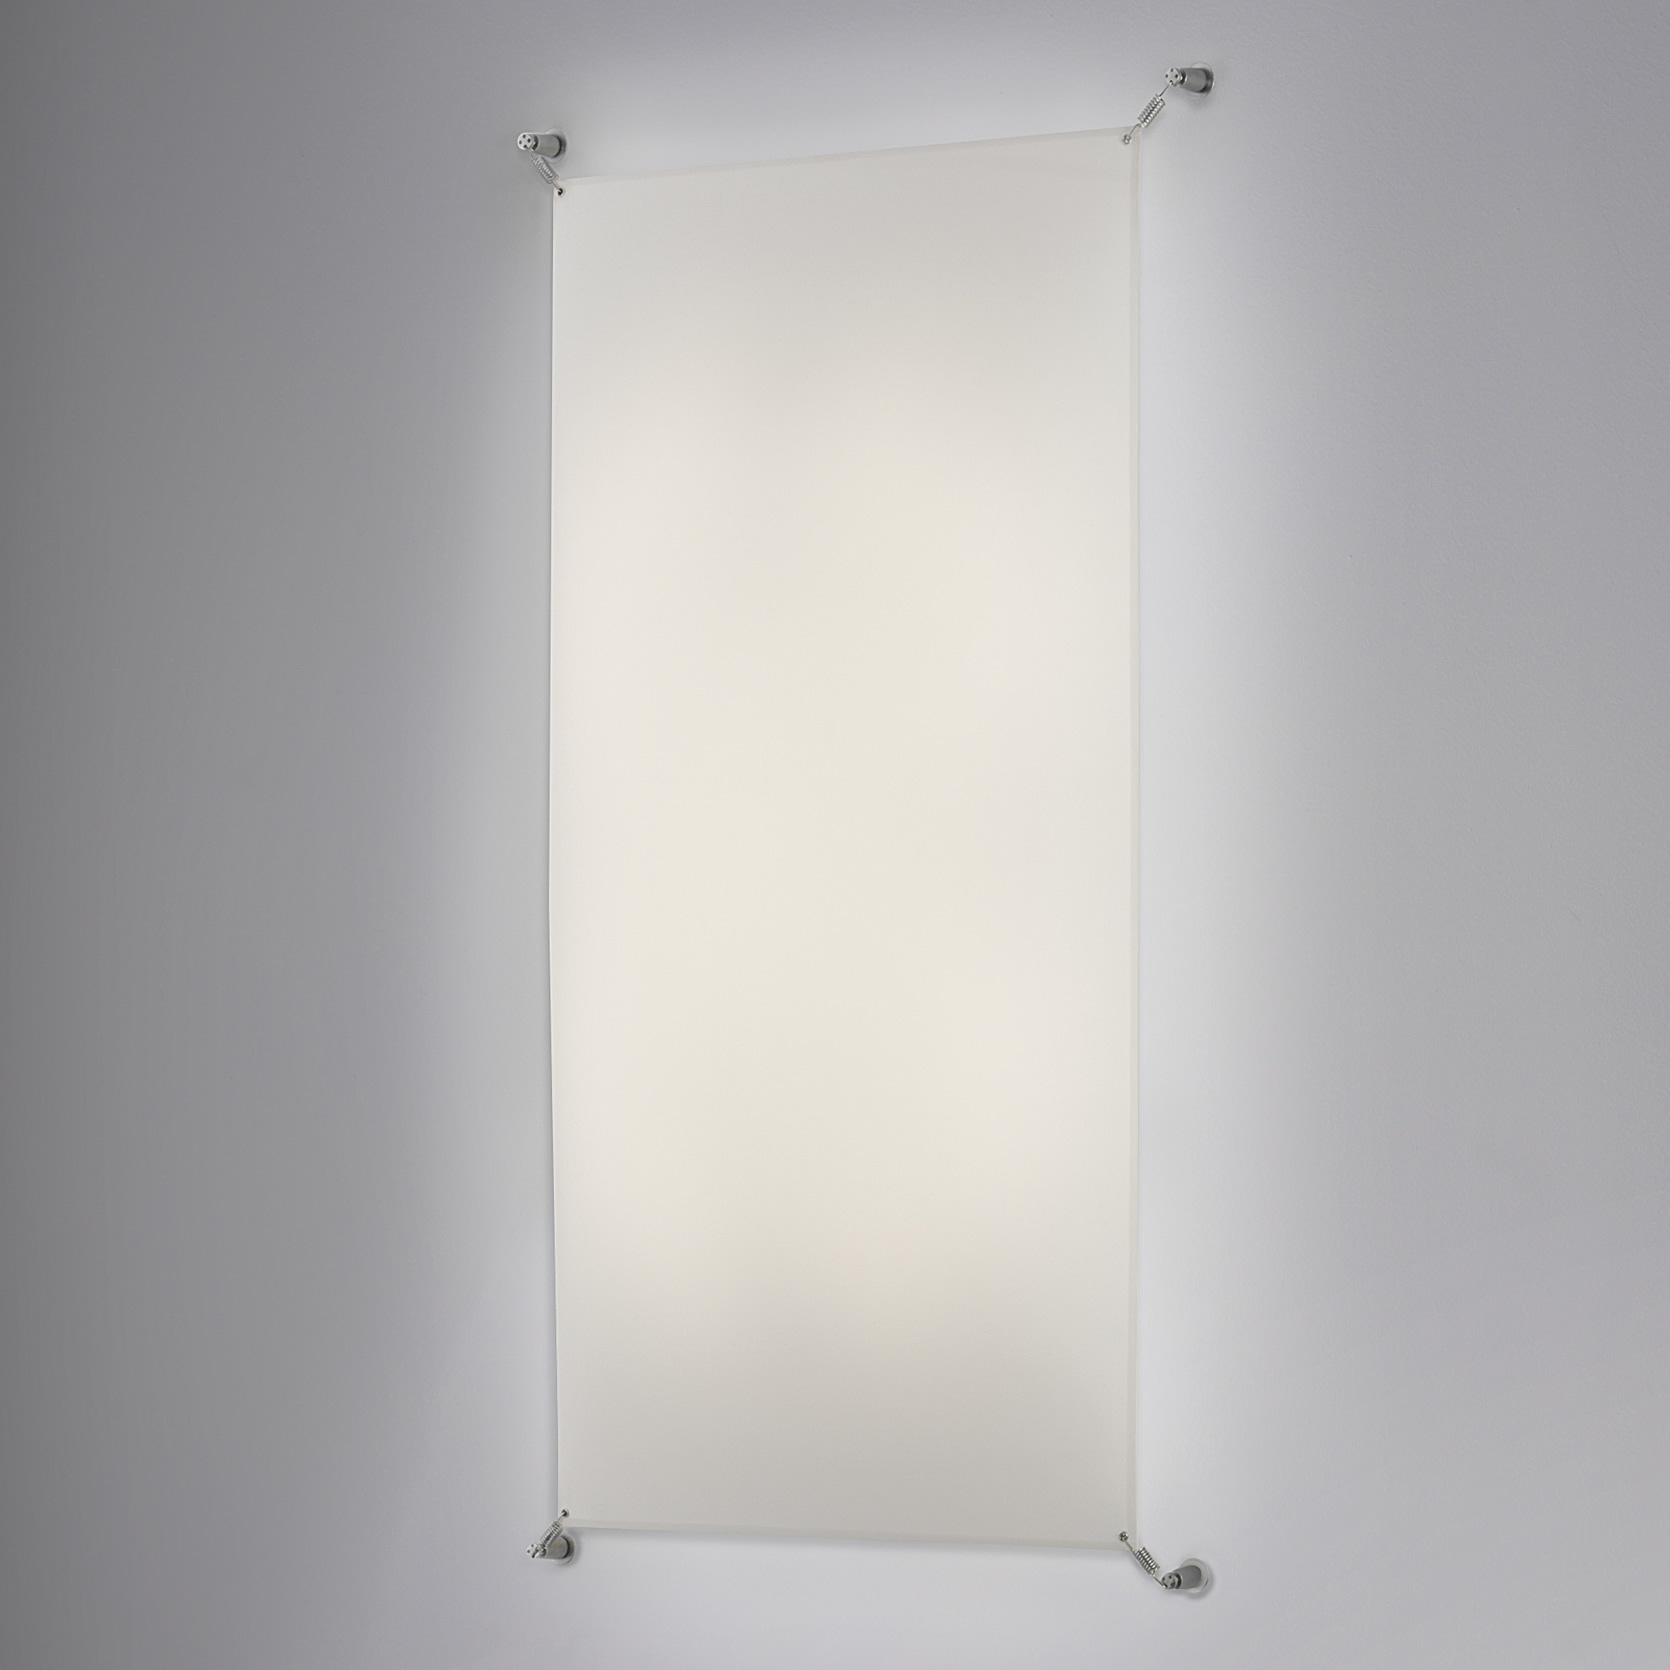 Veroca Wall Wall/Ceiling lamp 80x40 Electronic adjustable 2Gx13 2x22w